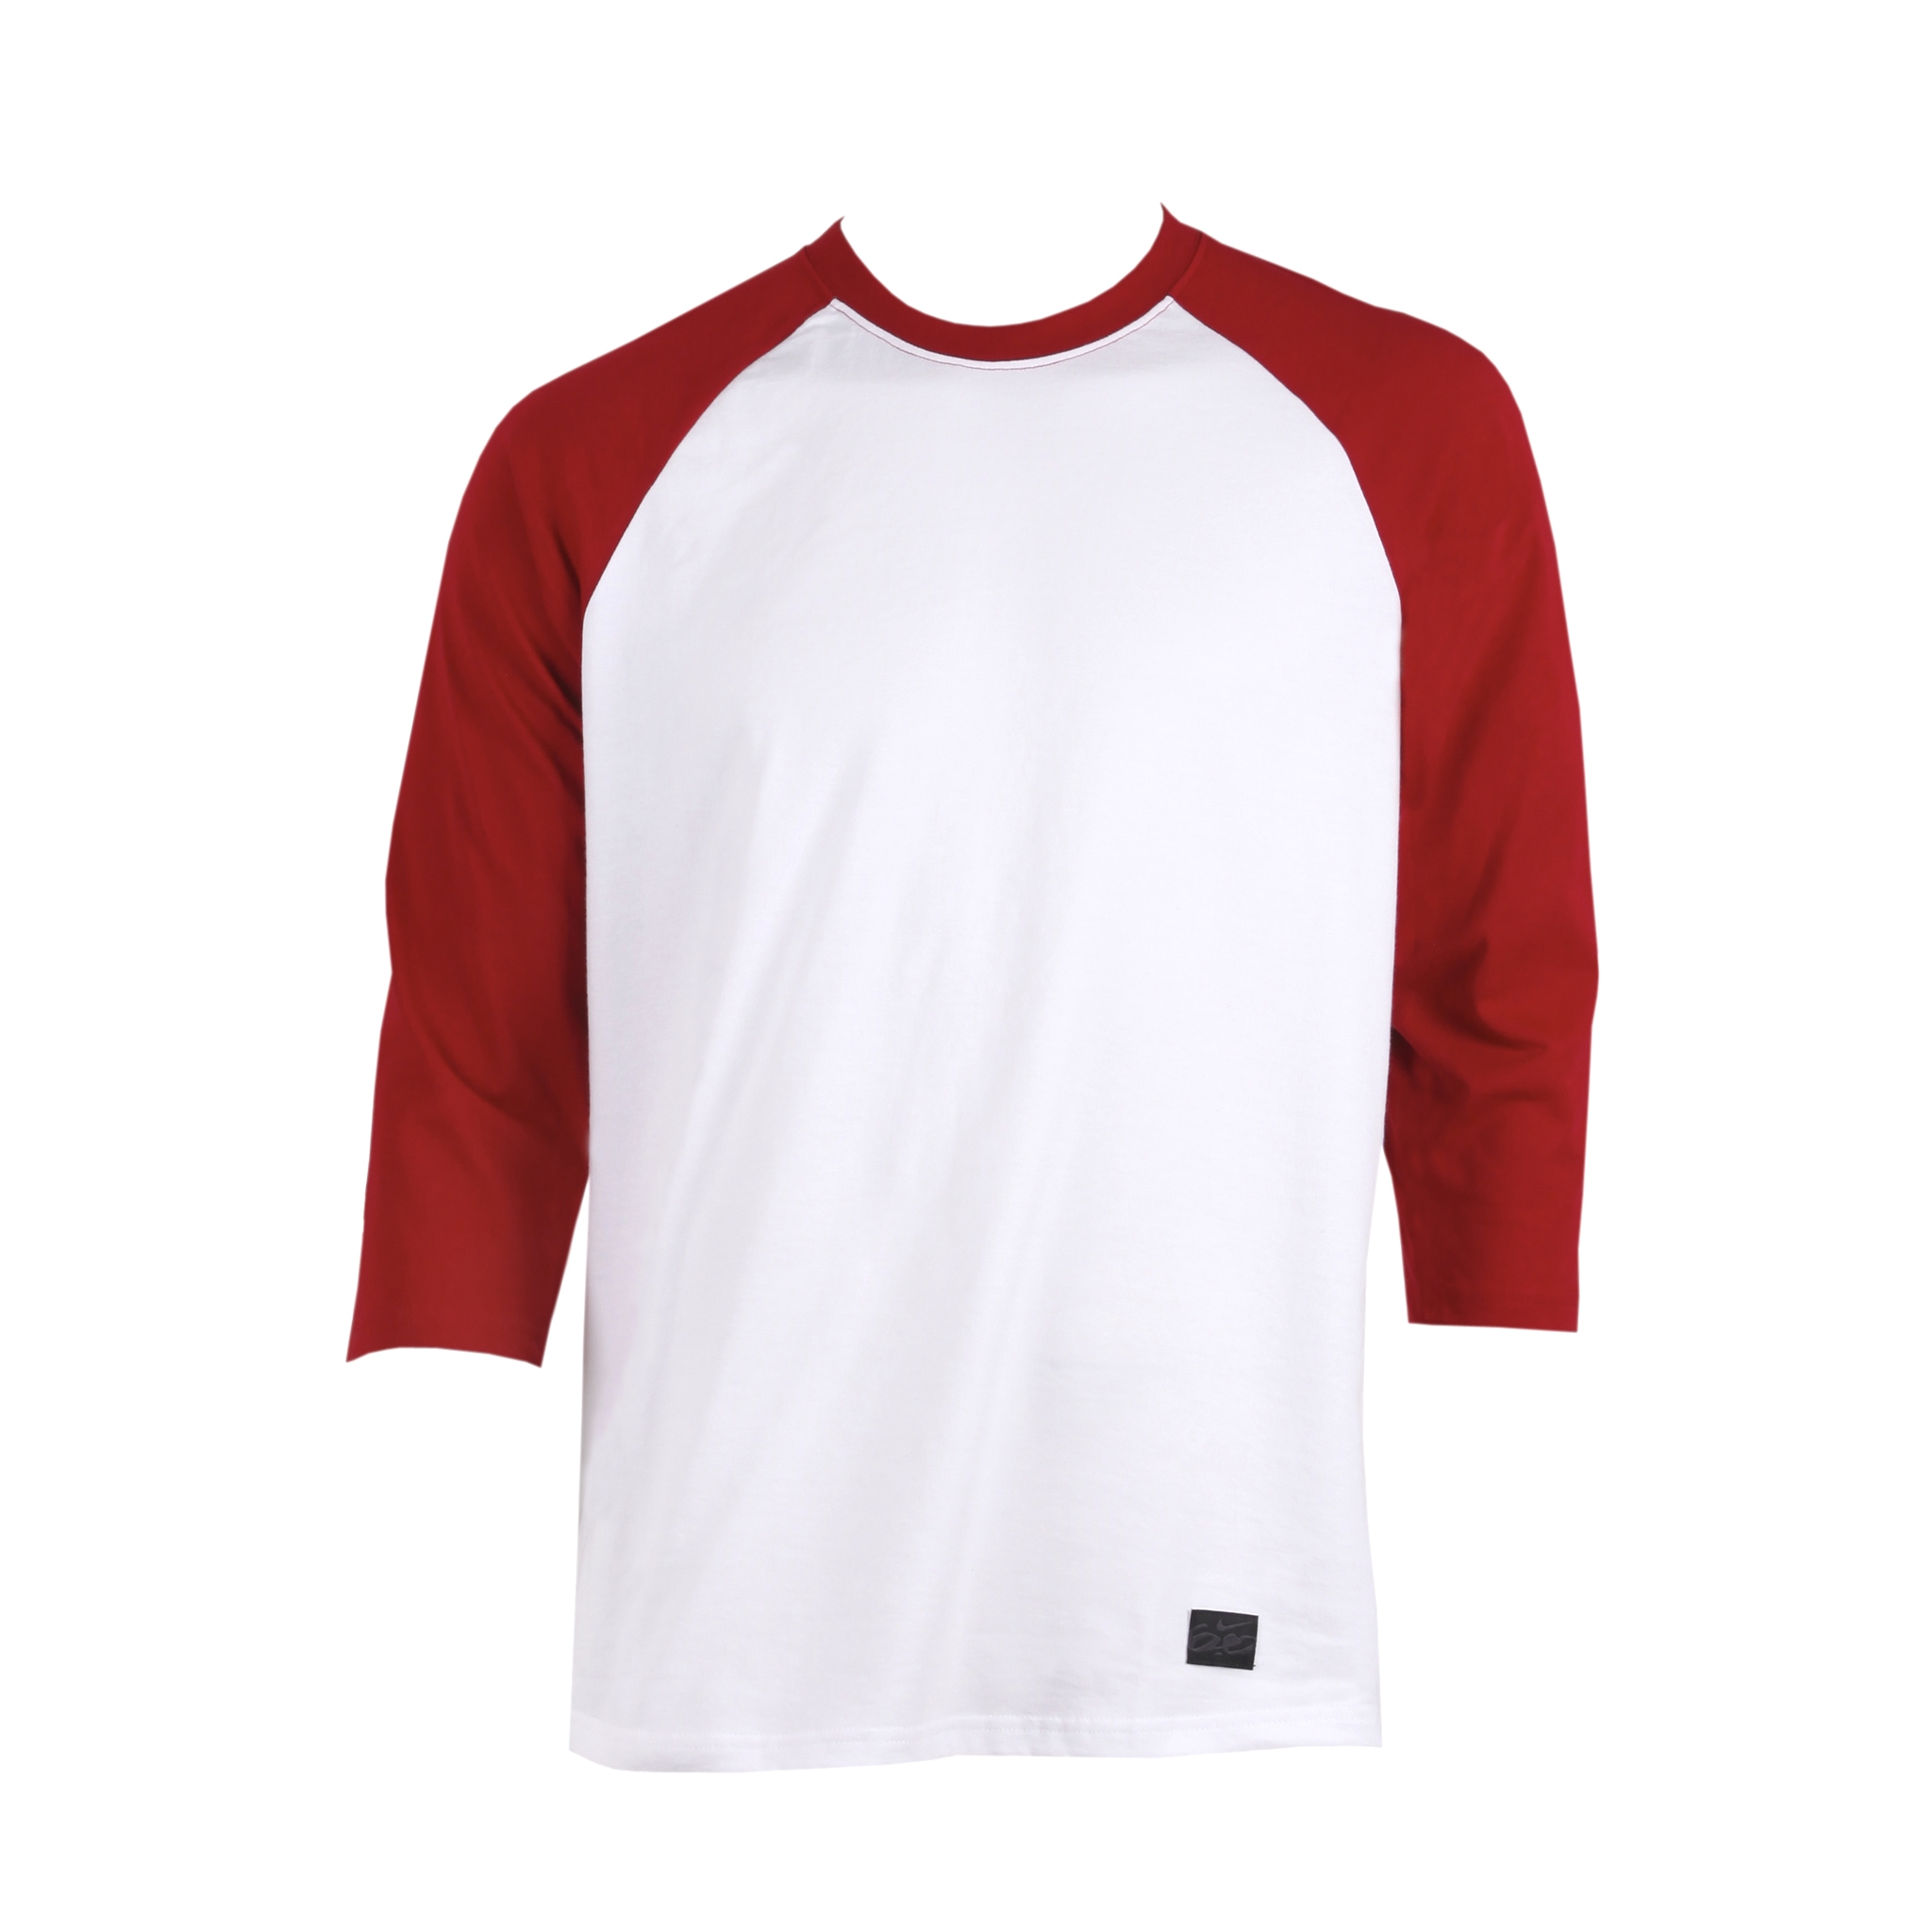 Home / T-shirt / Mens Striped T-Shirt Short Sleeve Red and White ...